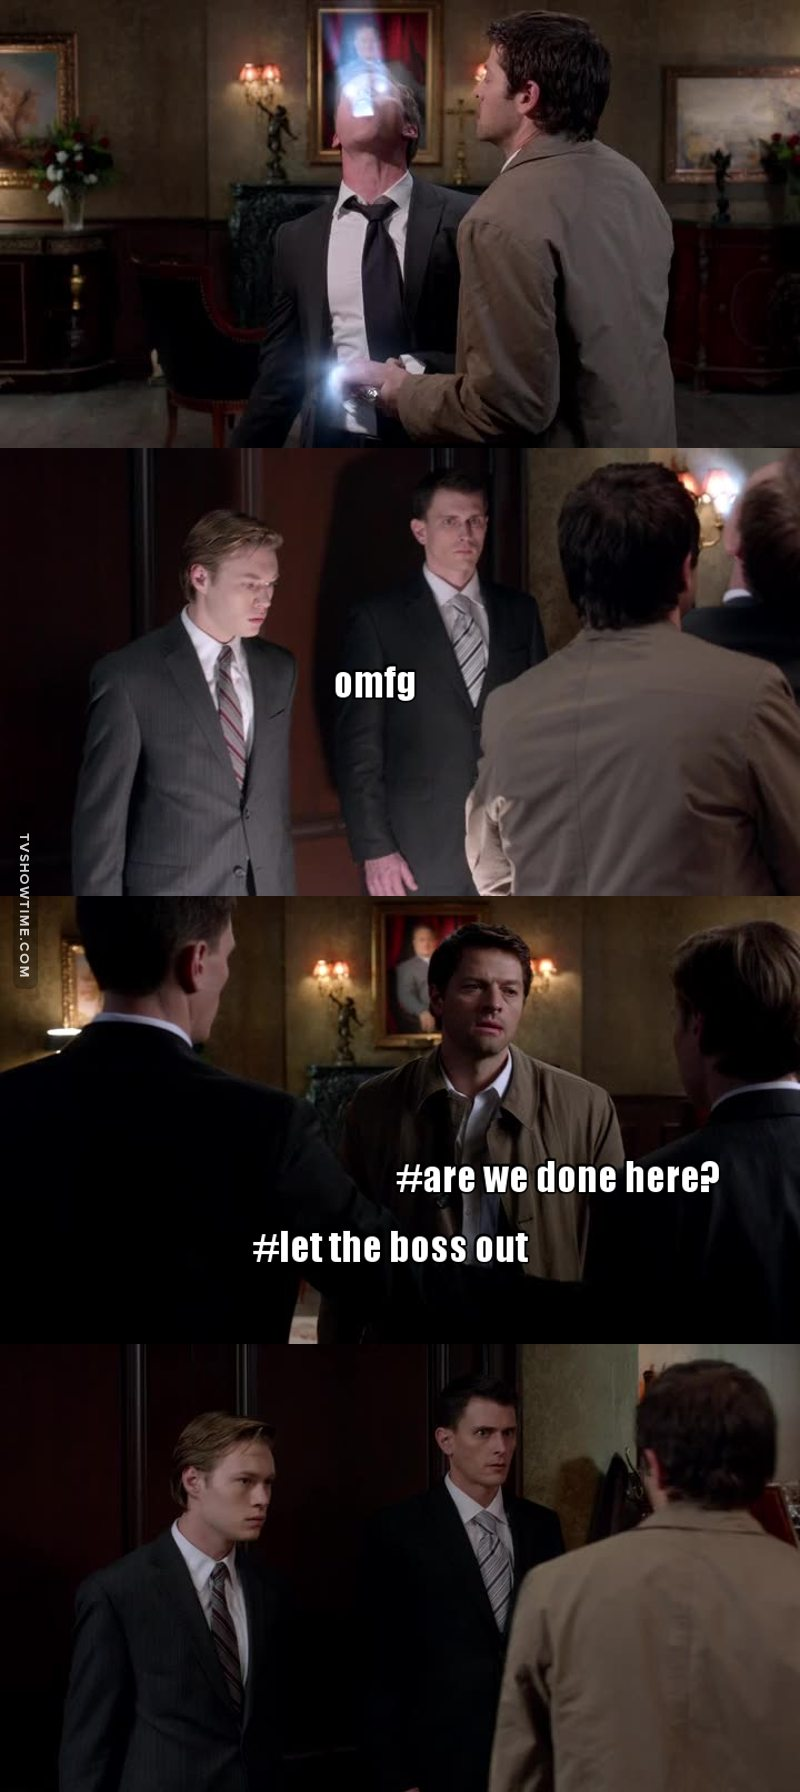 They look so terrified omg😂 Cas can turn into a real badass, and I'd choose to follow him too😉